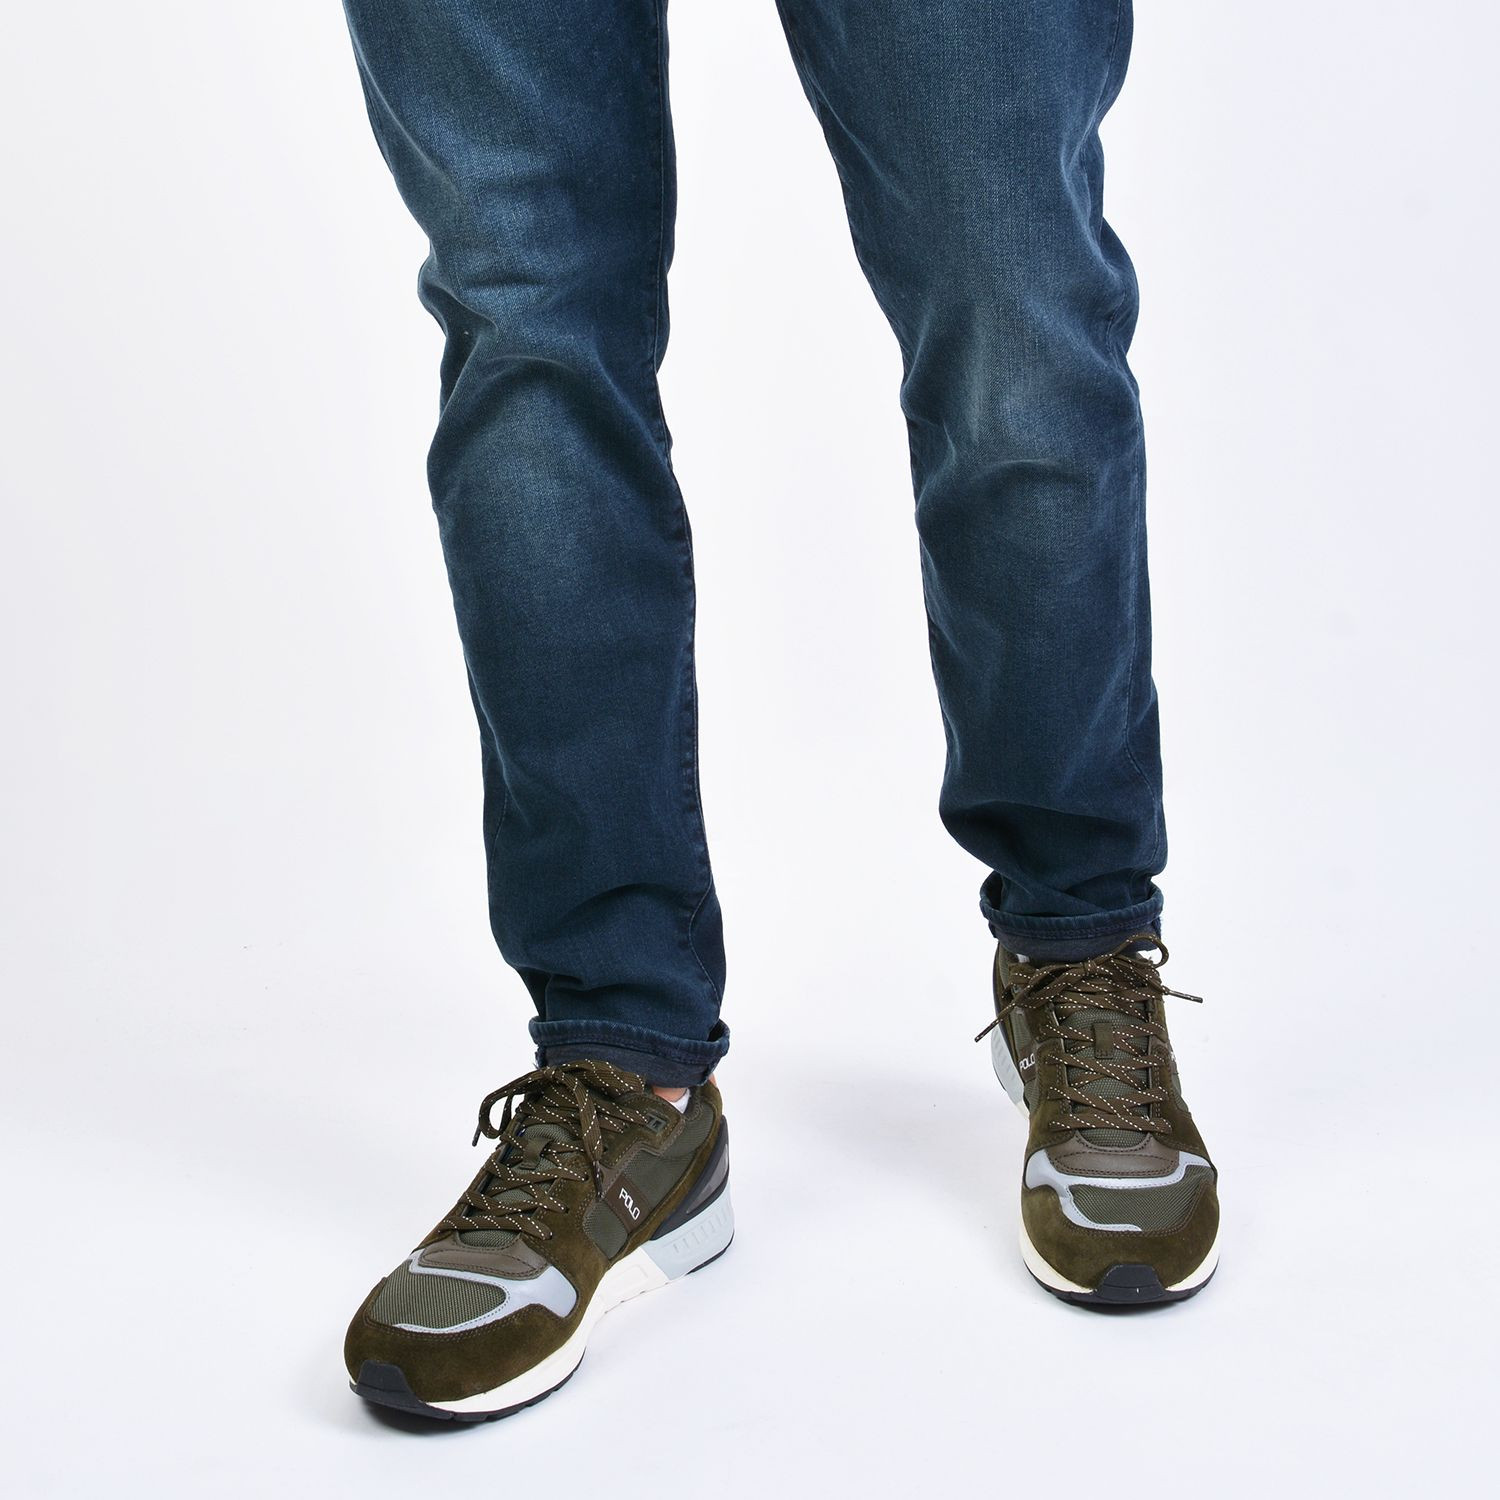 Levis 512™ SLIM TAPER FIT JEANS